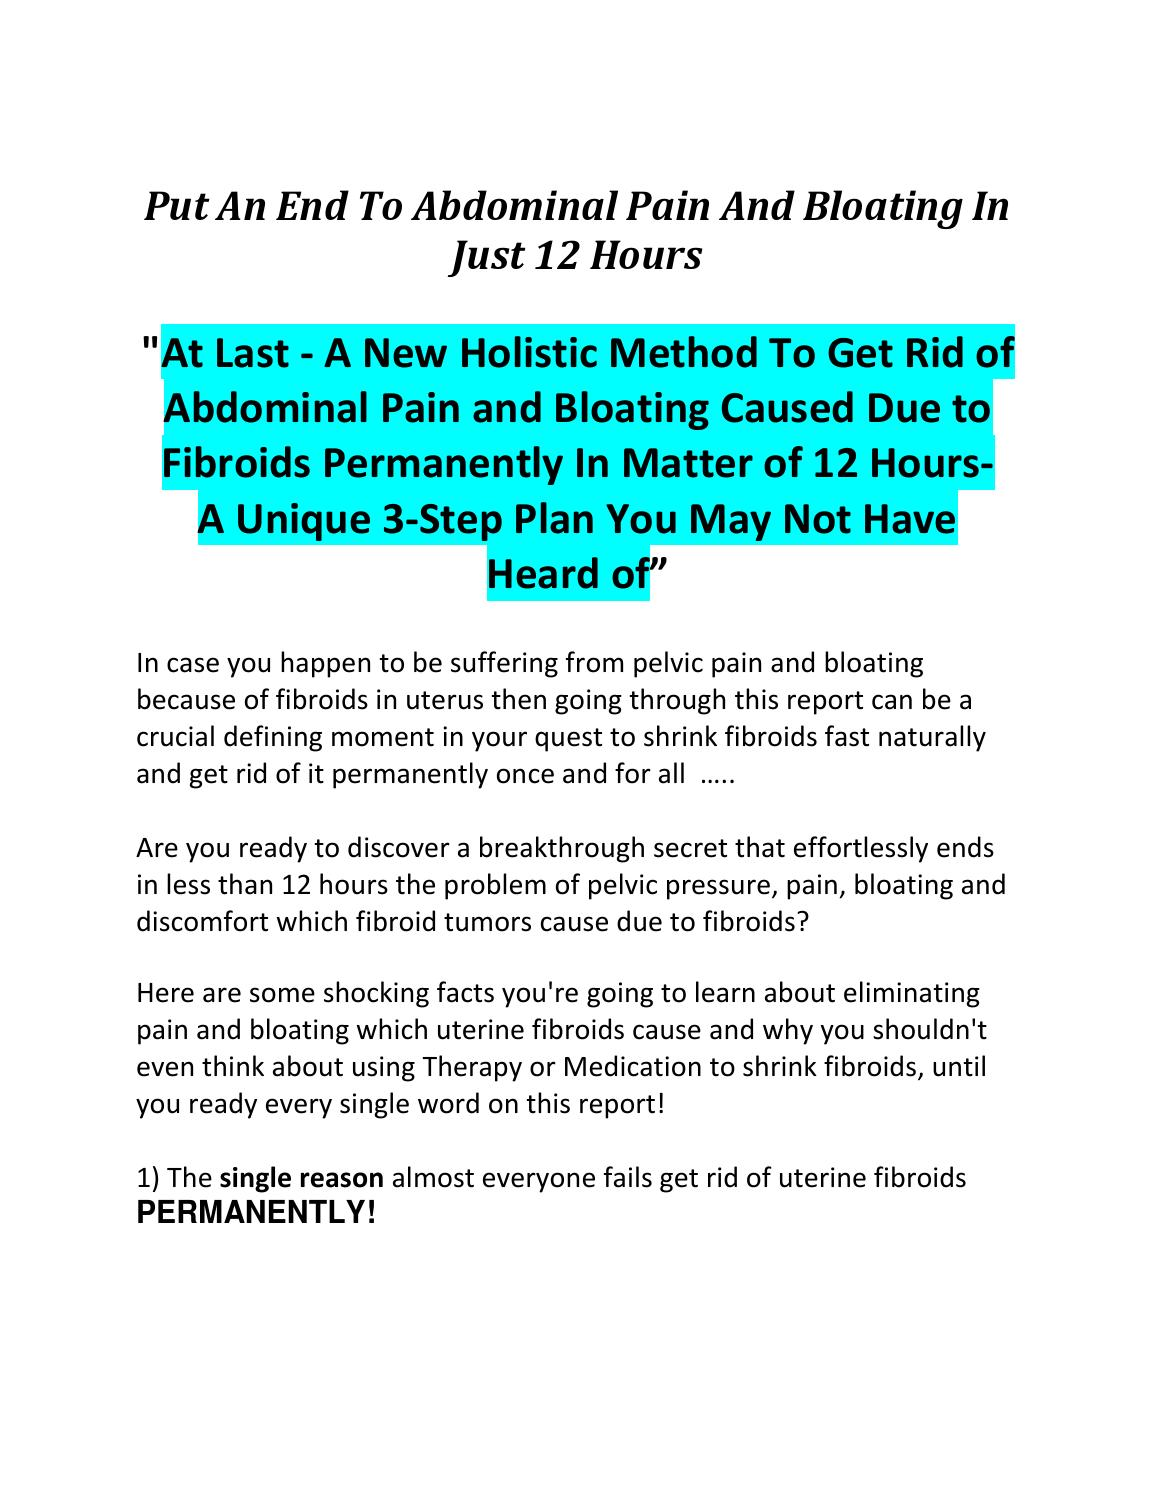 Shrink Fiboids Fast to Eliminate Fibroids Pain and Bloating